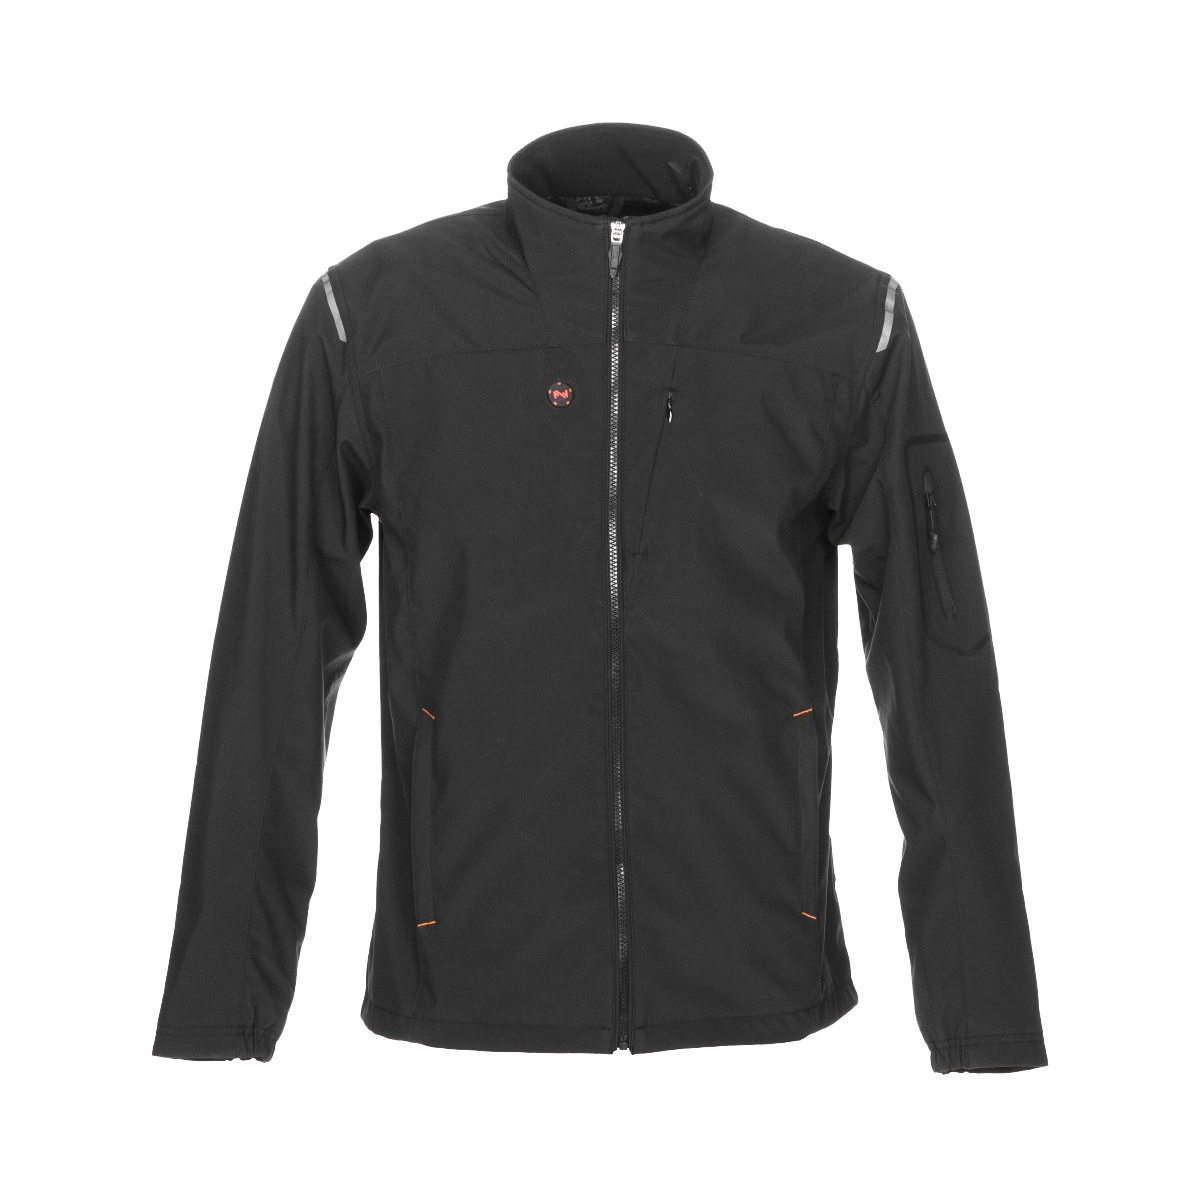 Picture of Mobile Warming MWJ16M07-XL-BLK Heated Jacket, XL, Men's, Fits to Chest Size: 44 in, Fabric, Black